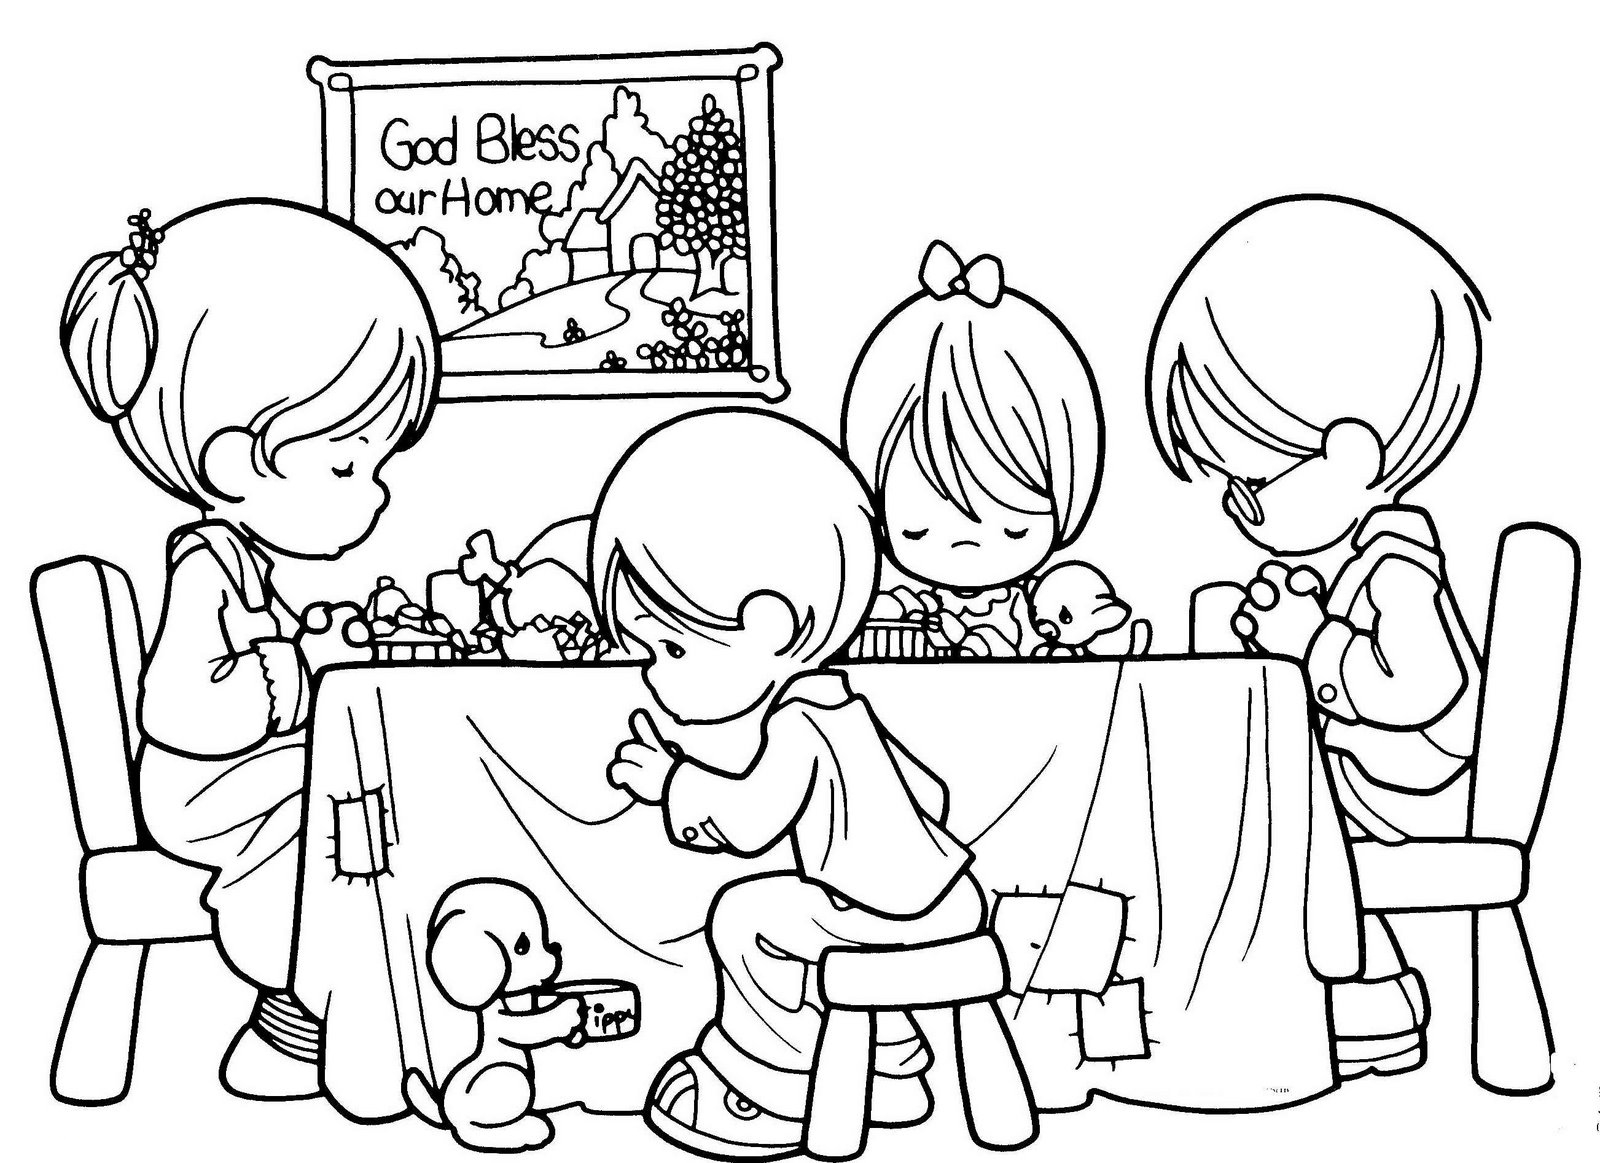 children coloring pages of families - photo#35